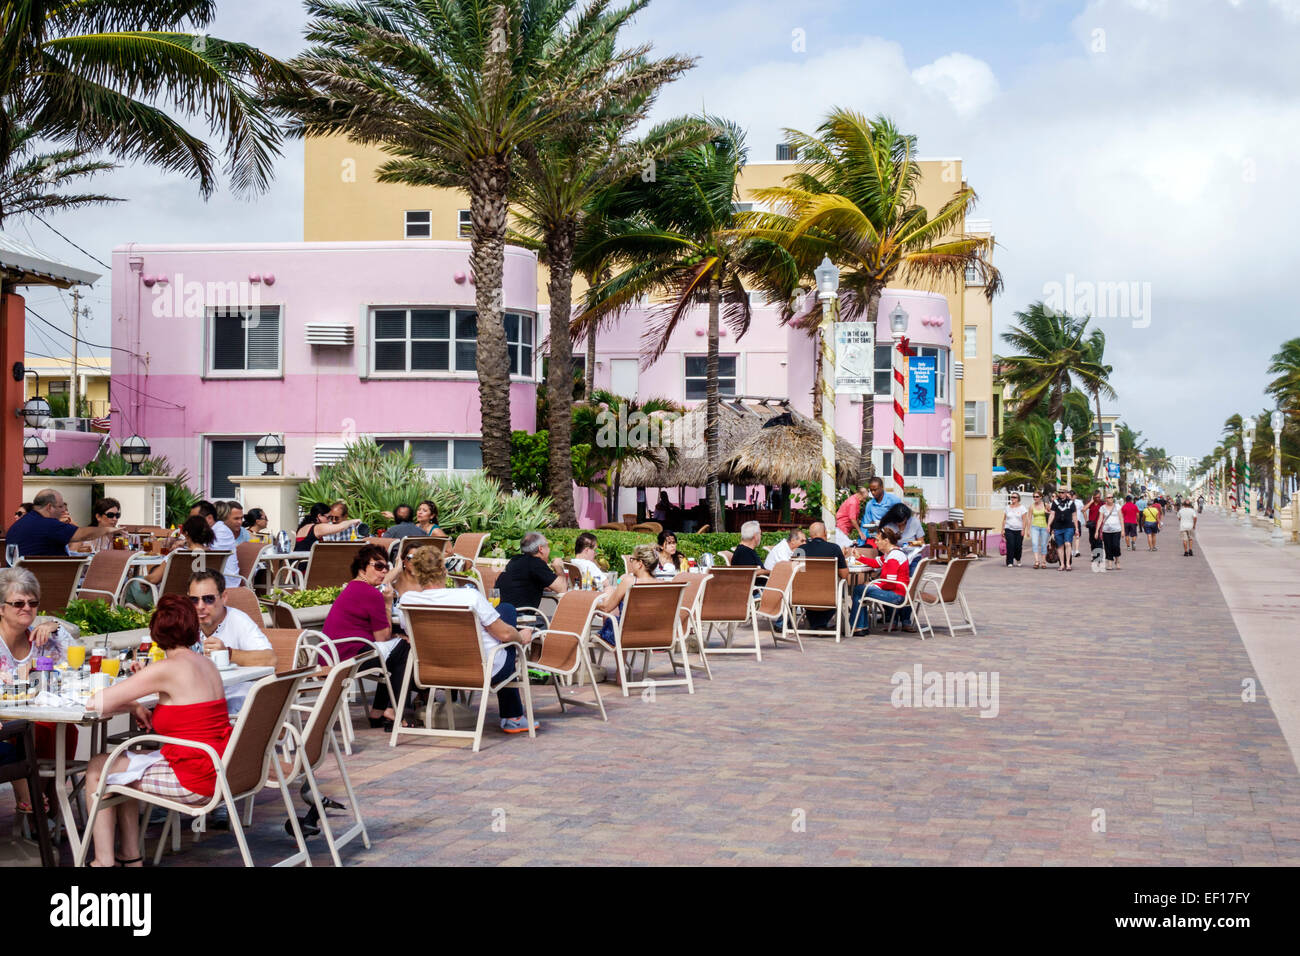 Floride Hollywood Broadwalk Nord voie piétonnière promenade balade Océan Atlantique beach restaurant Photo Stock